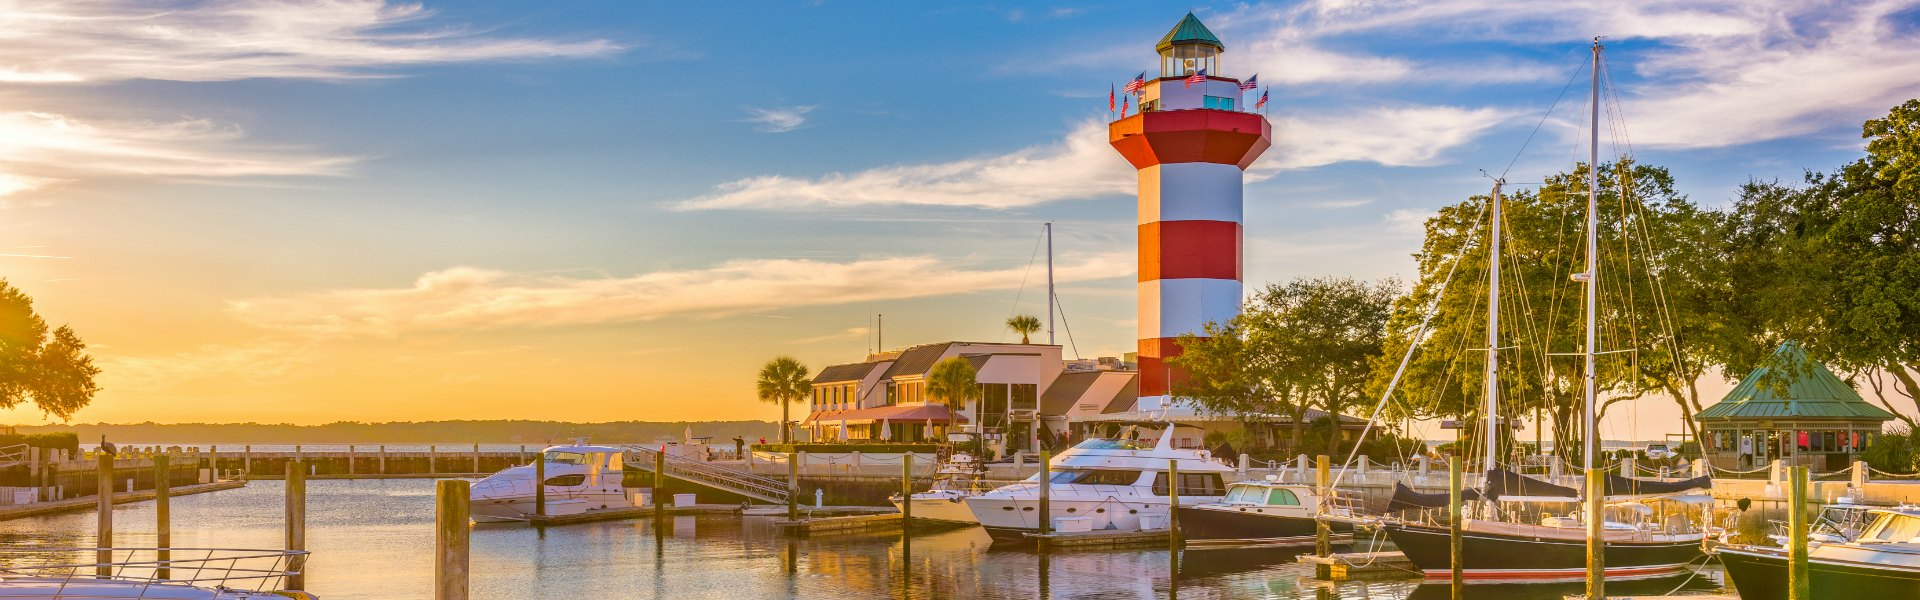 Home Watch Services On Hilton Head